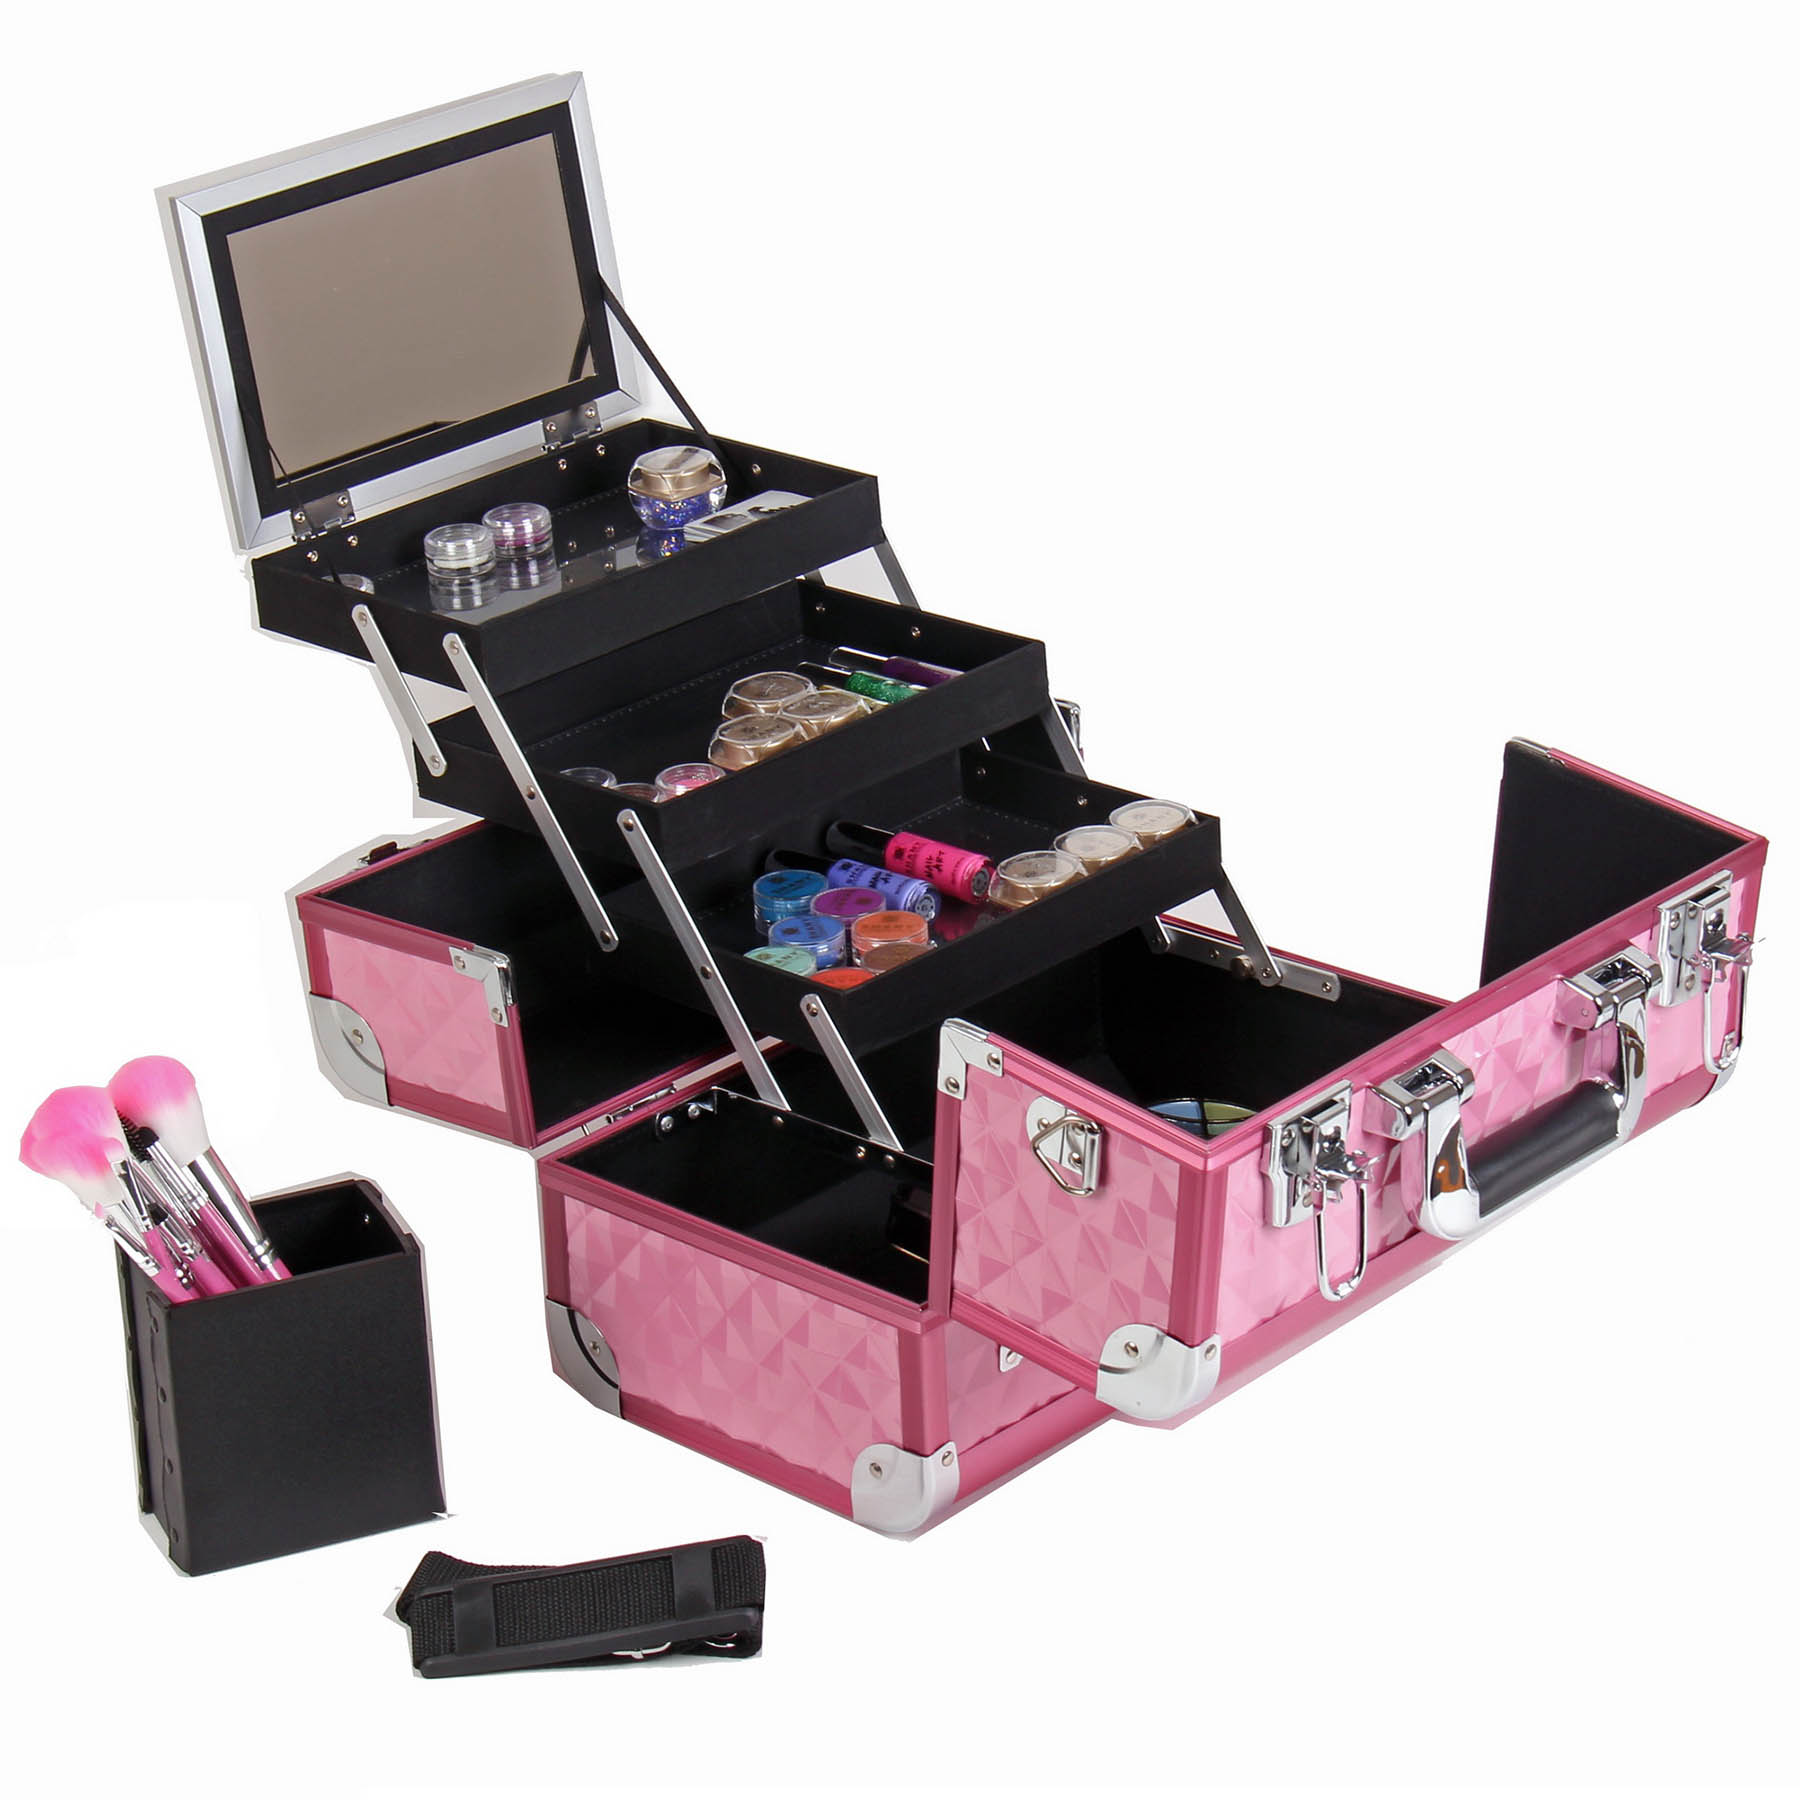 SHANY-Fantasy-Collection-Makeup-Artists-Cosmetics-Train-Case miniature 39